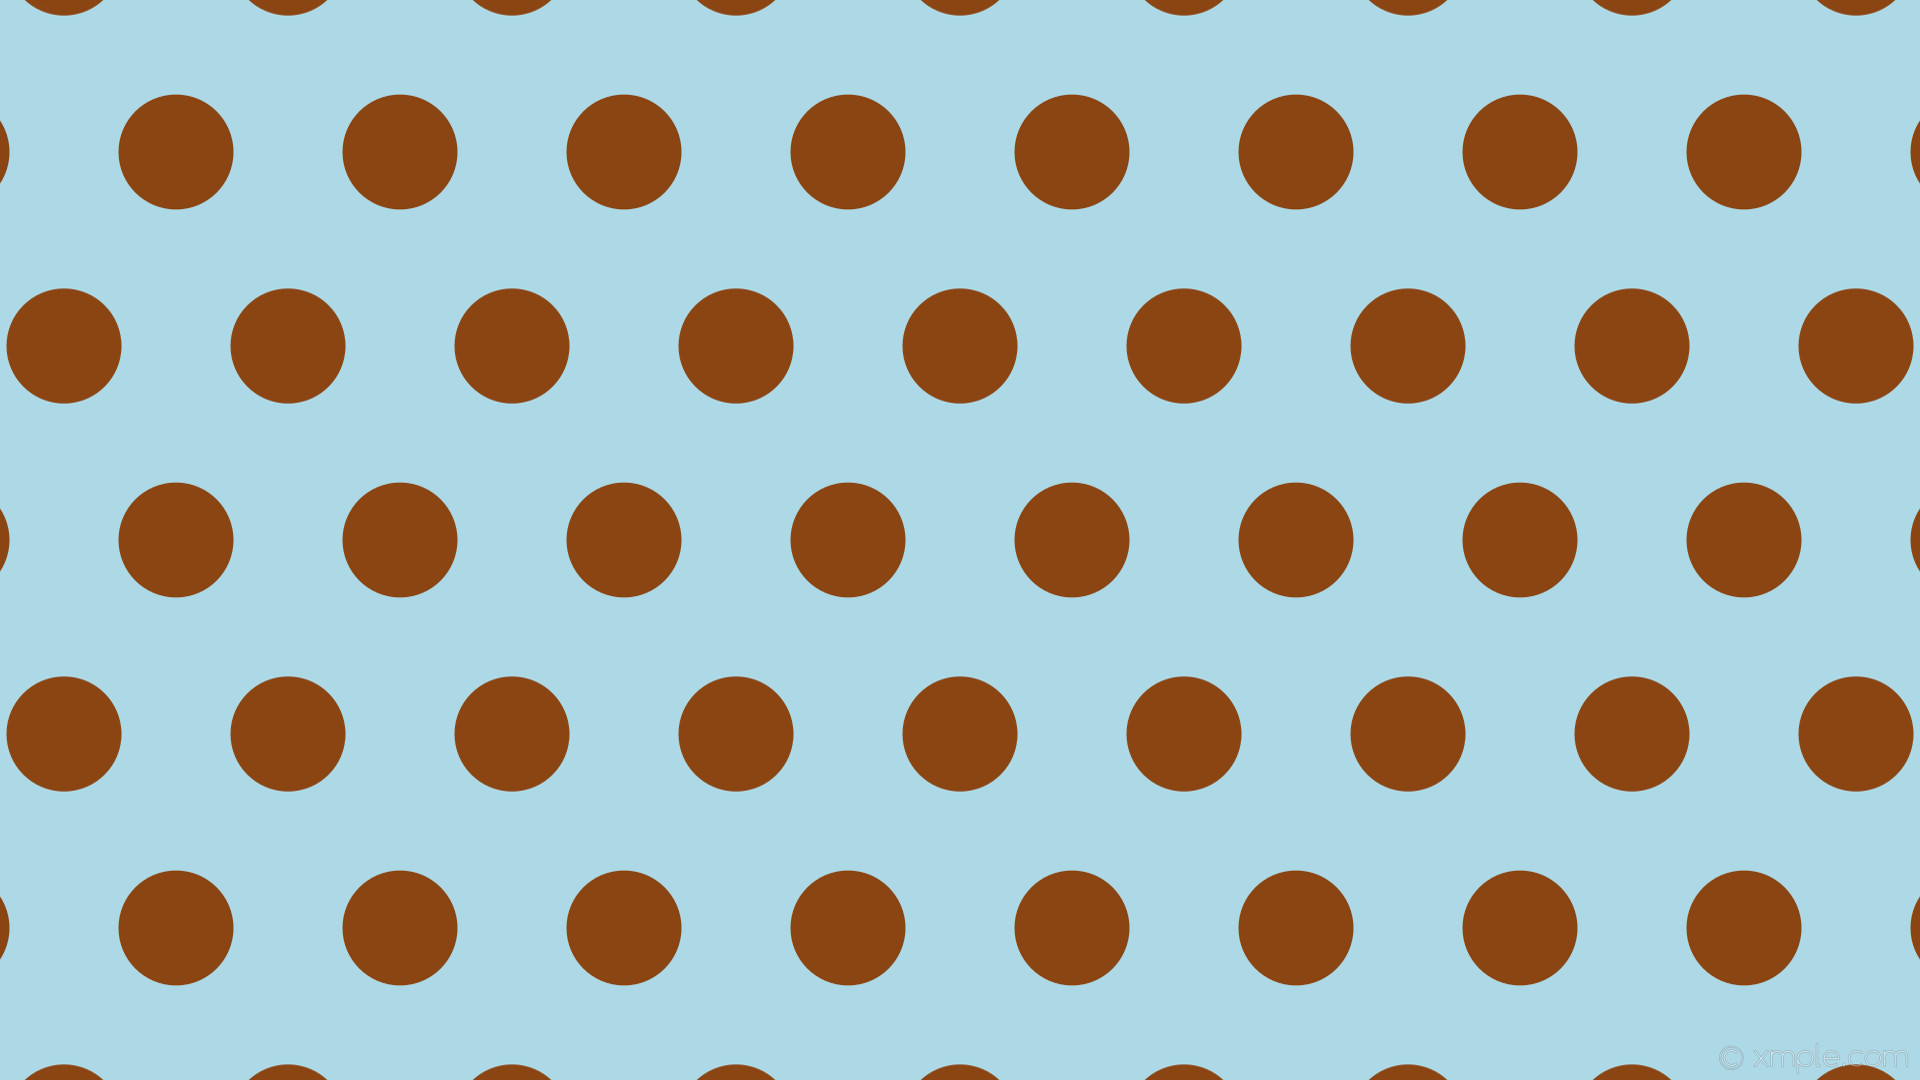 wallpaper dots brown blue polka hexagon light blue saddle brown #add8e6  #8b4513 0°